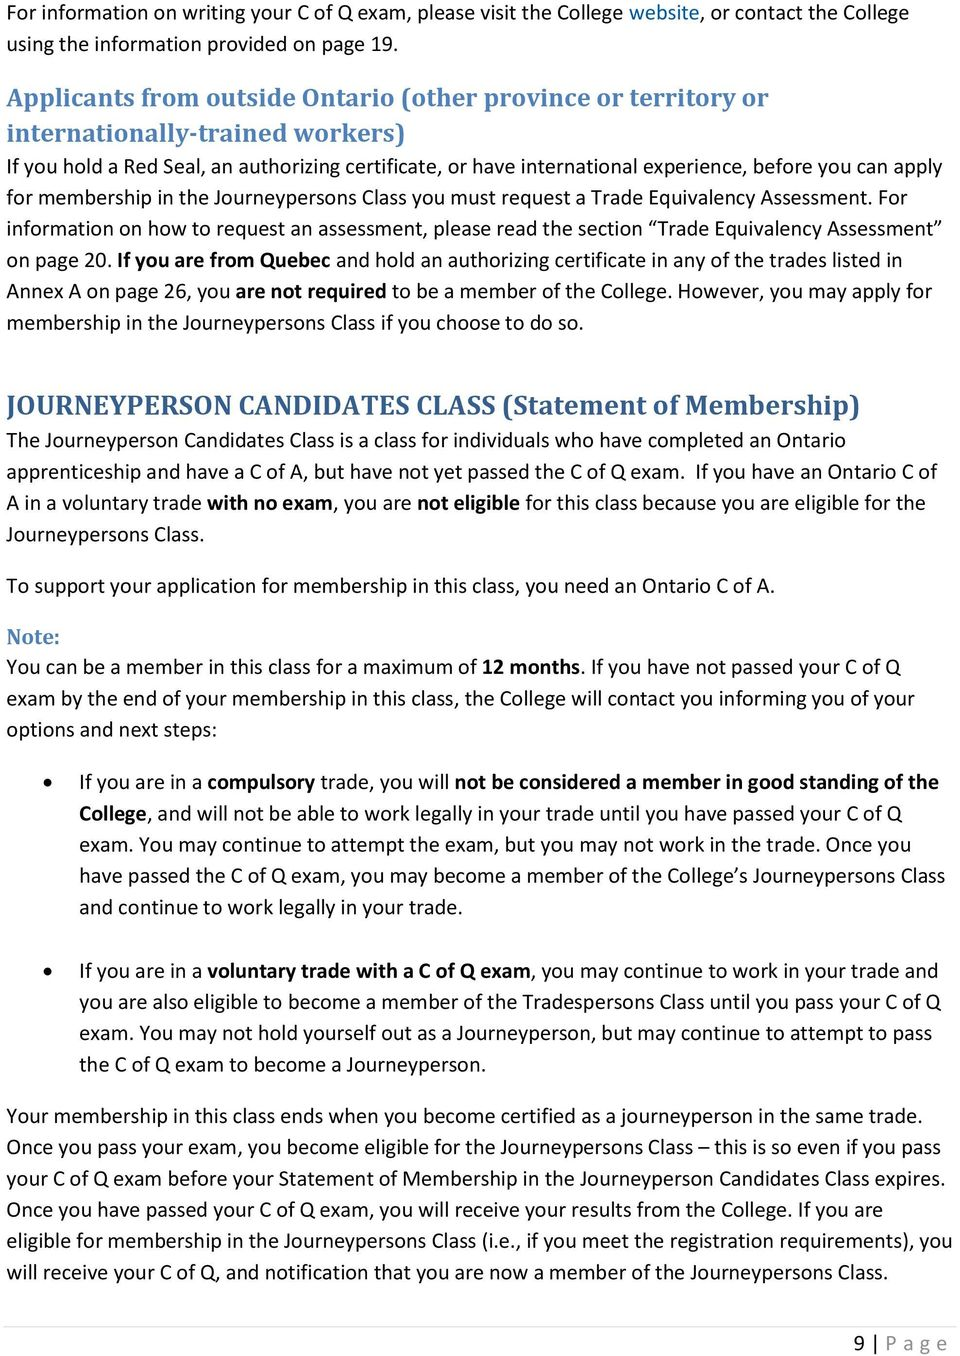 apply for membership in the Journeypersons Class you must request a Trade Equivalency Assessment.